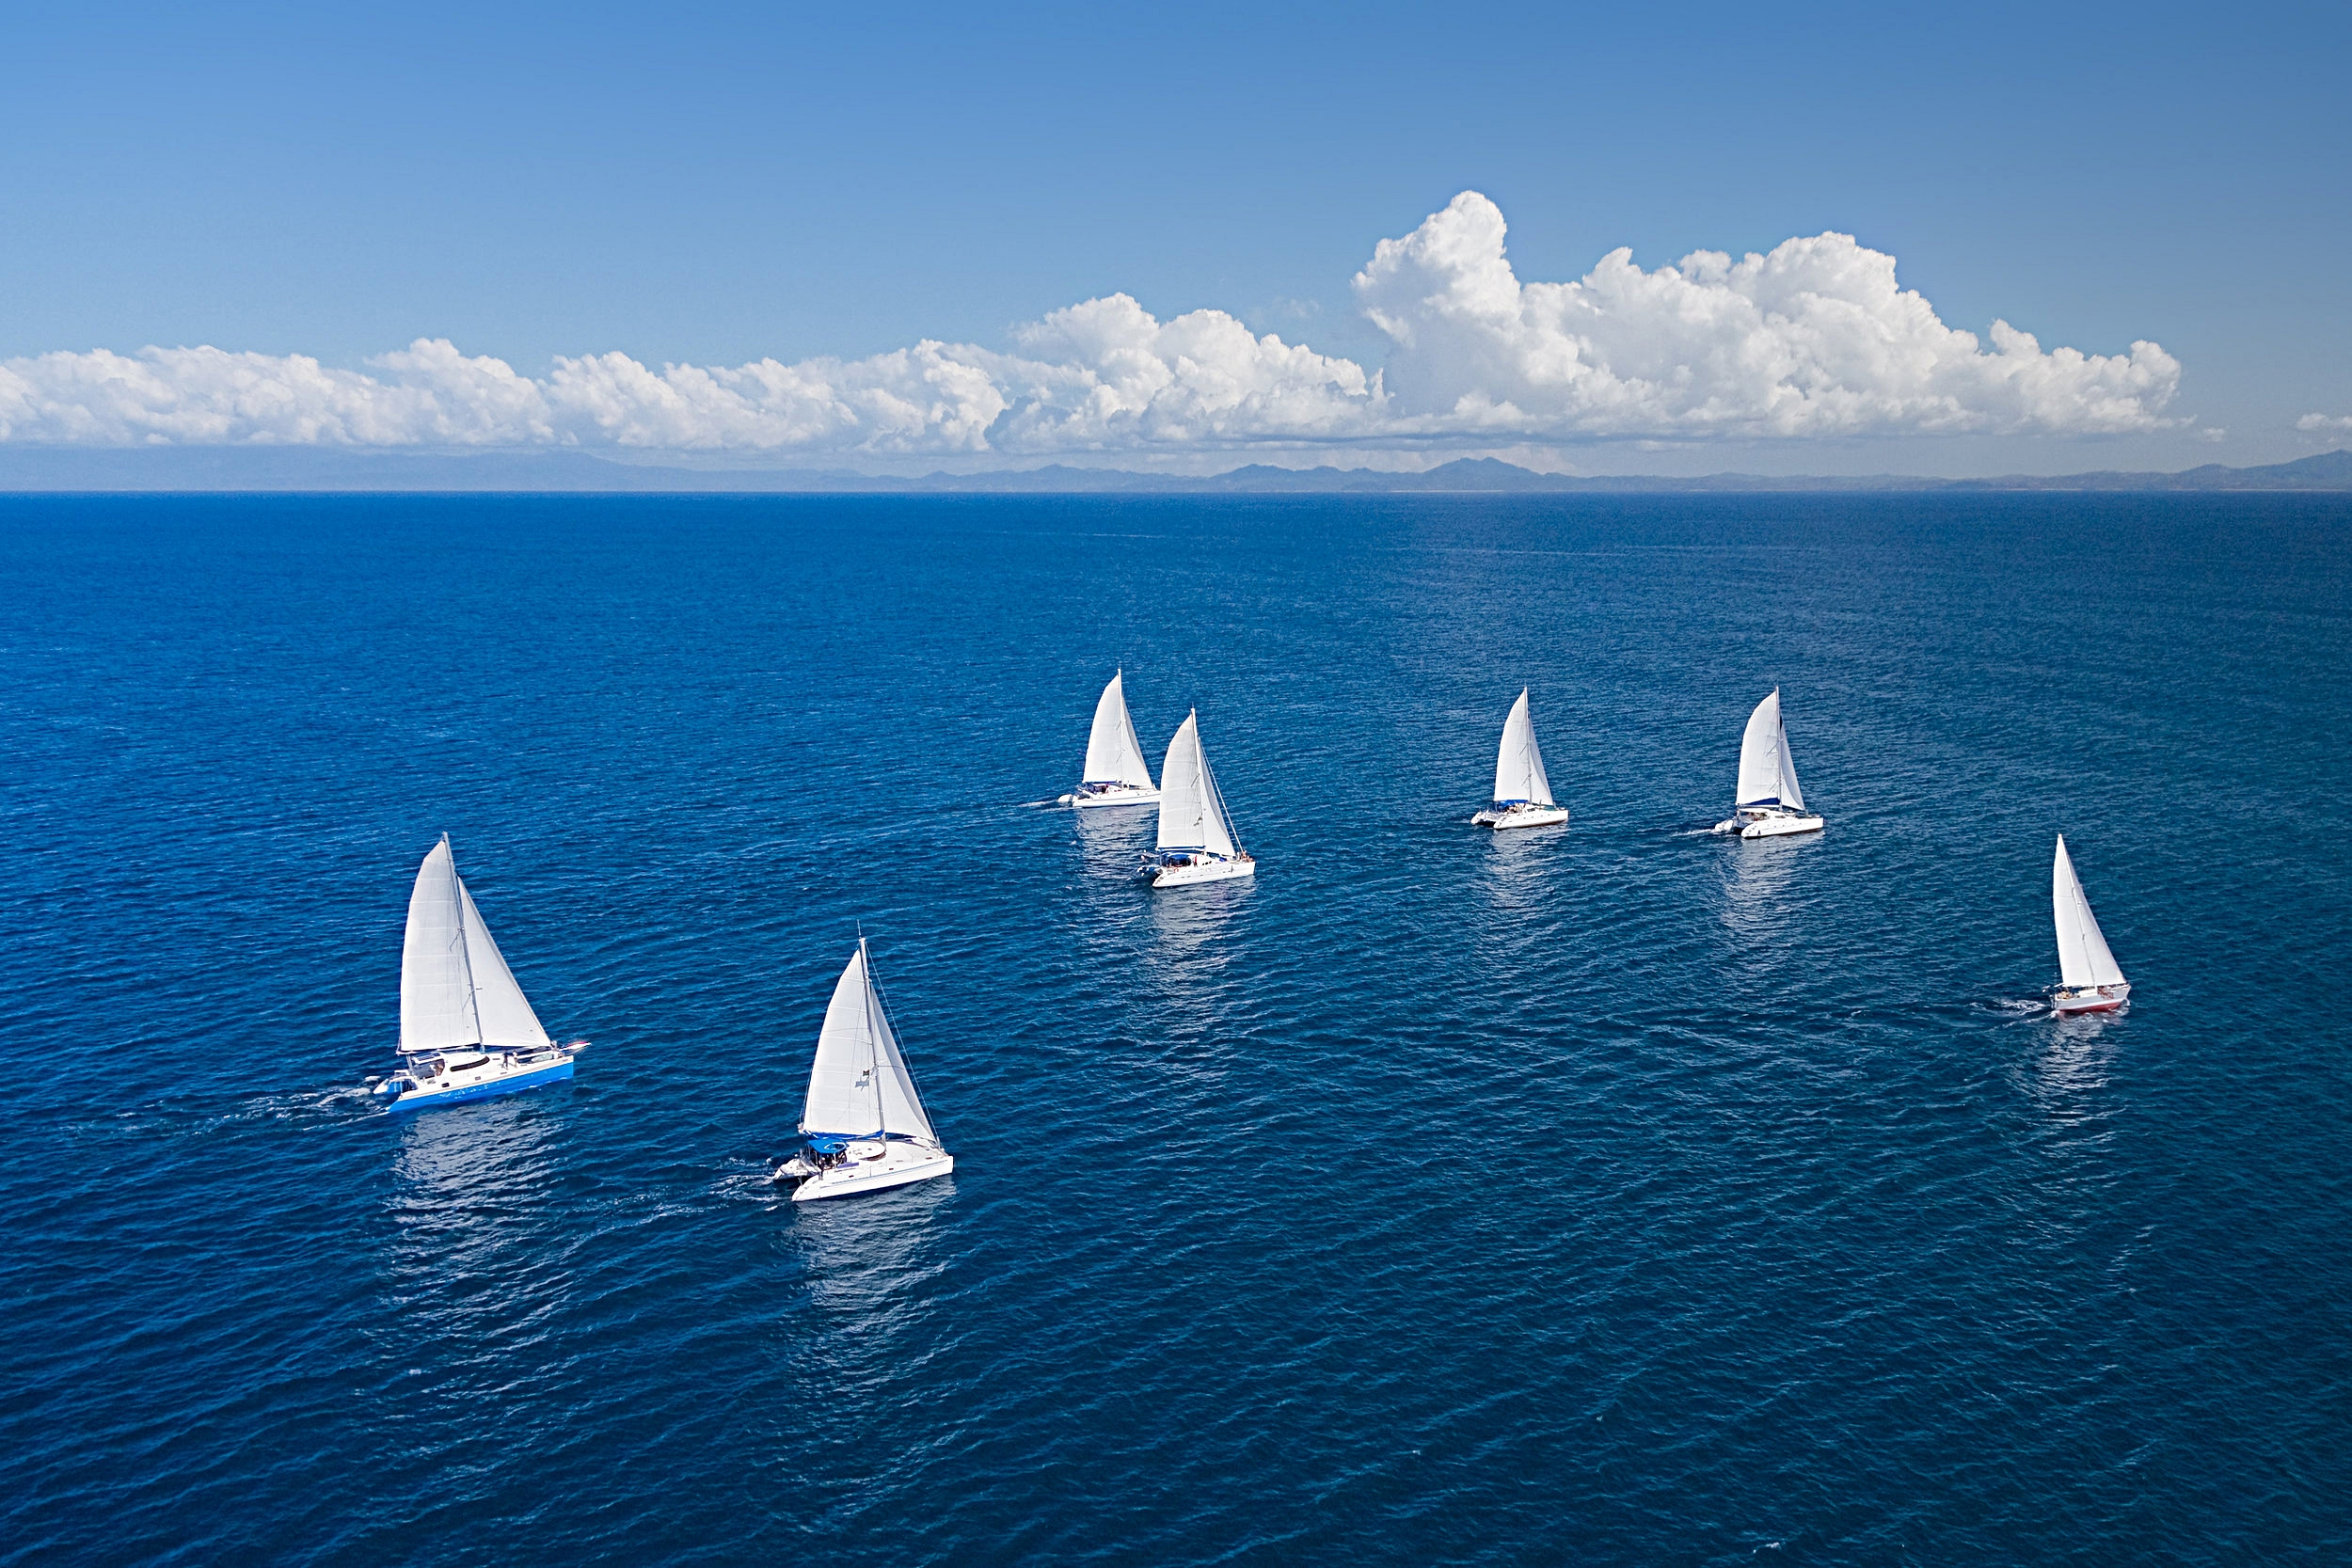 A Flotilla is a group of yachts sailing together.